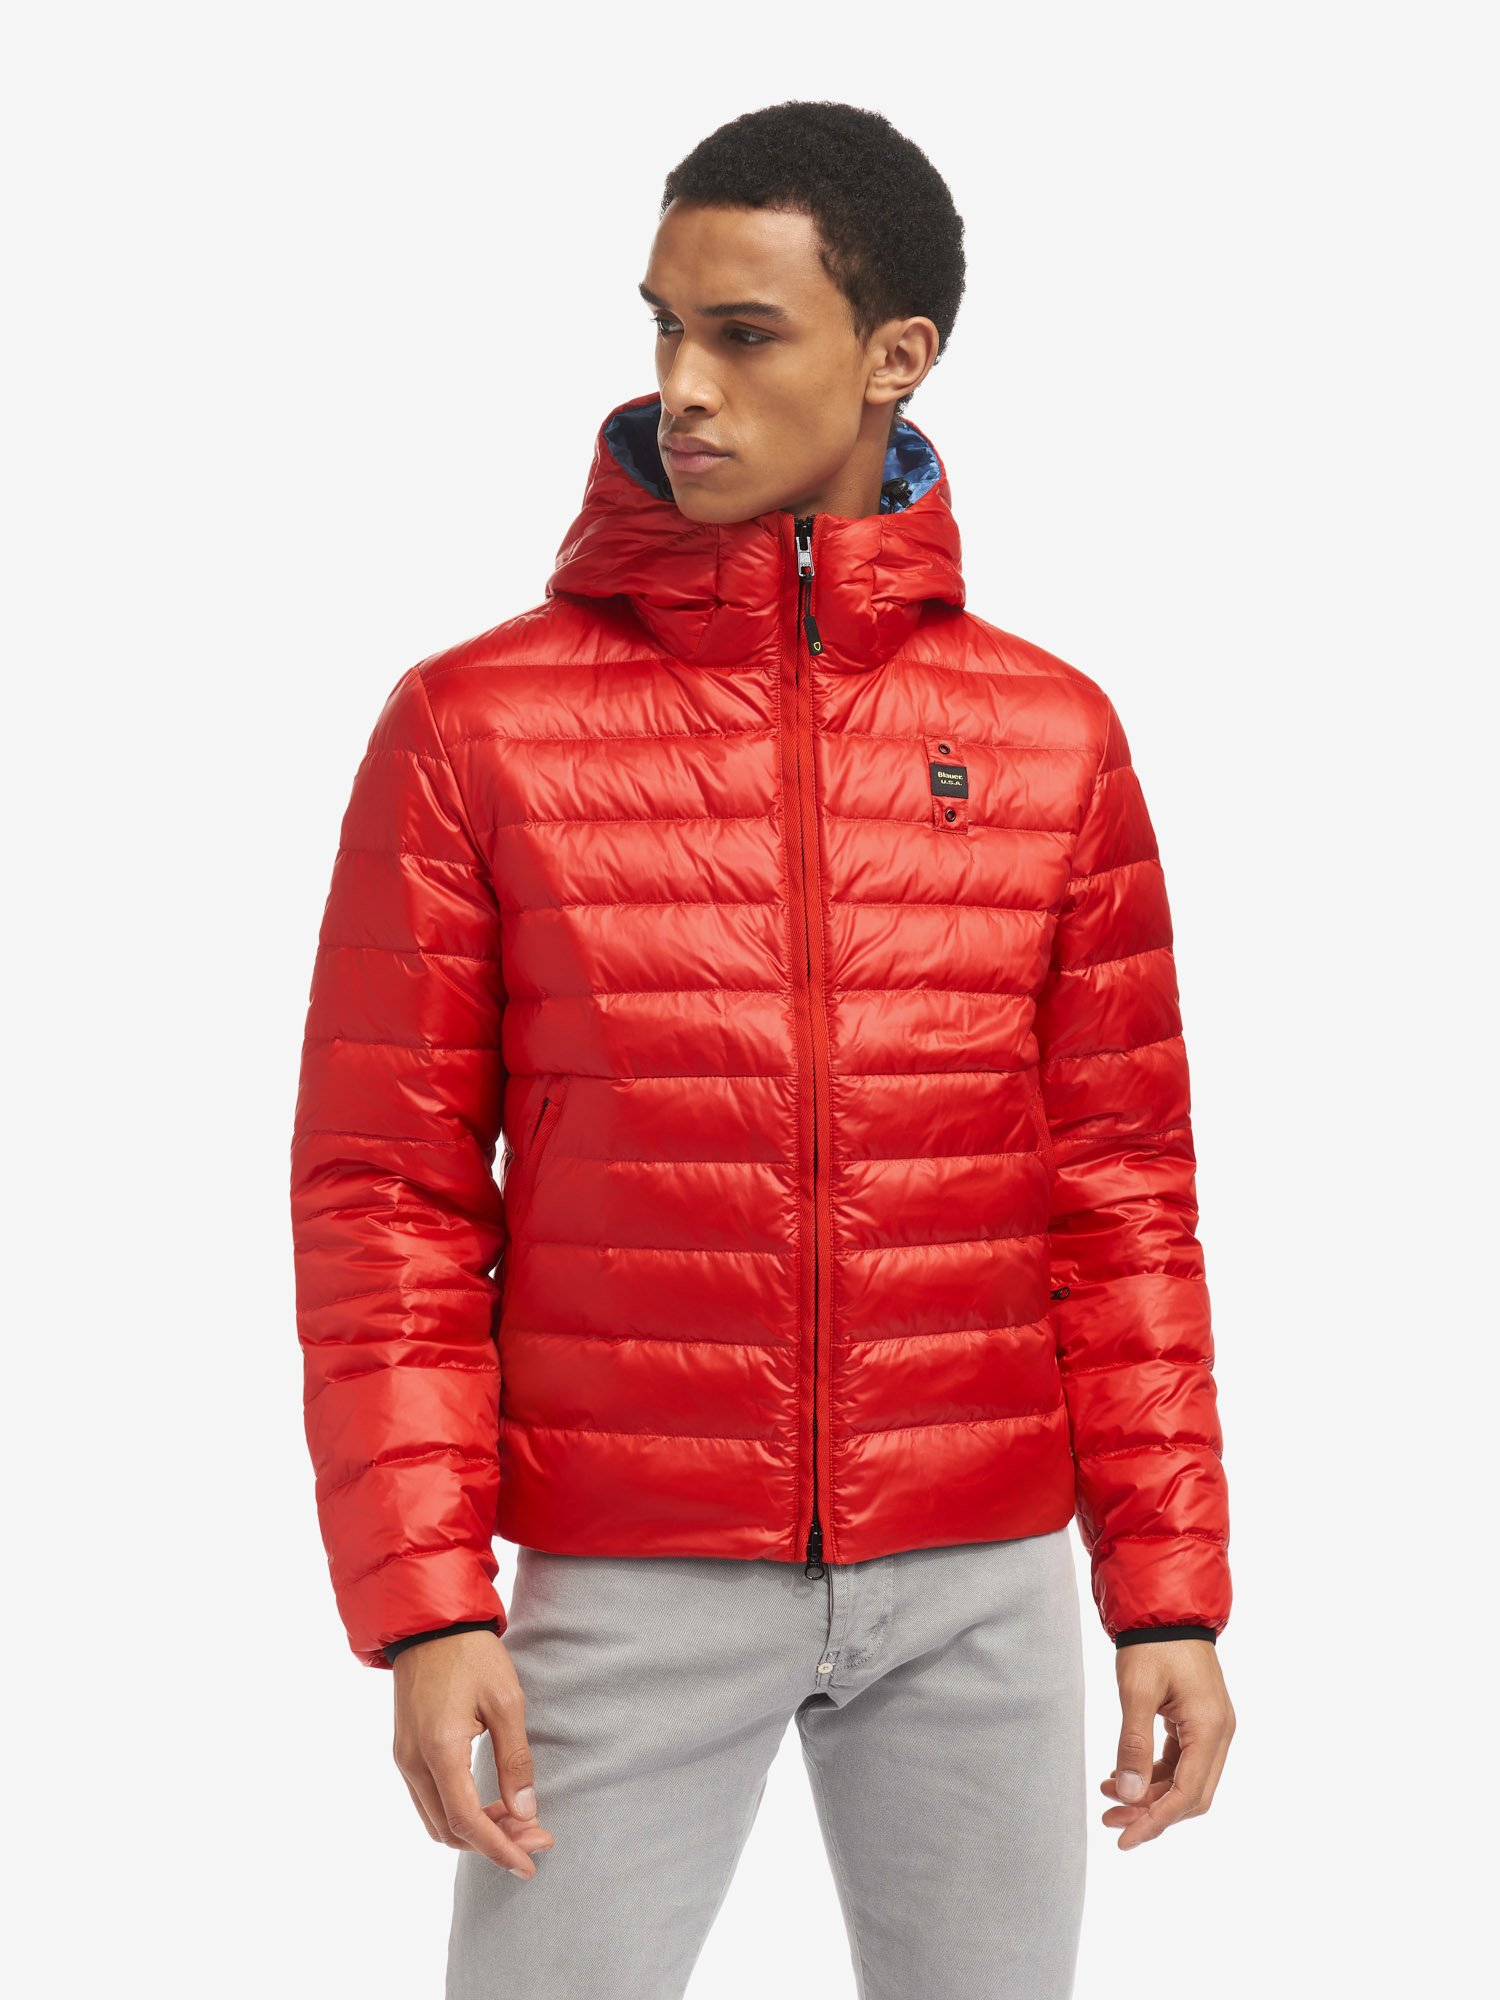 JACOB SHINY STRIPED DOWN JACKET WITH HOOD - Blauer